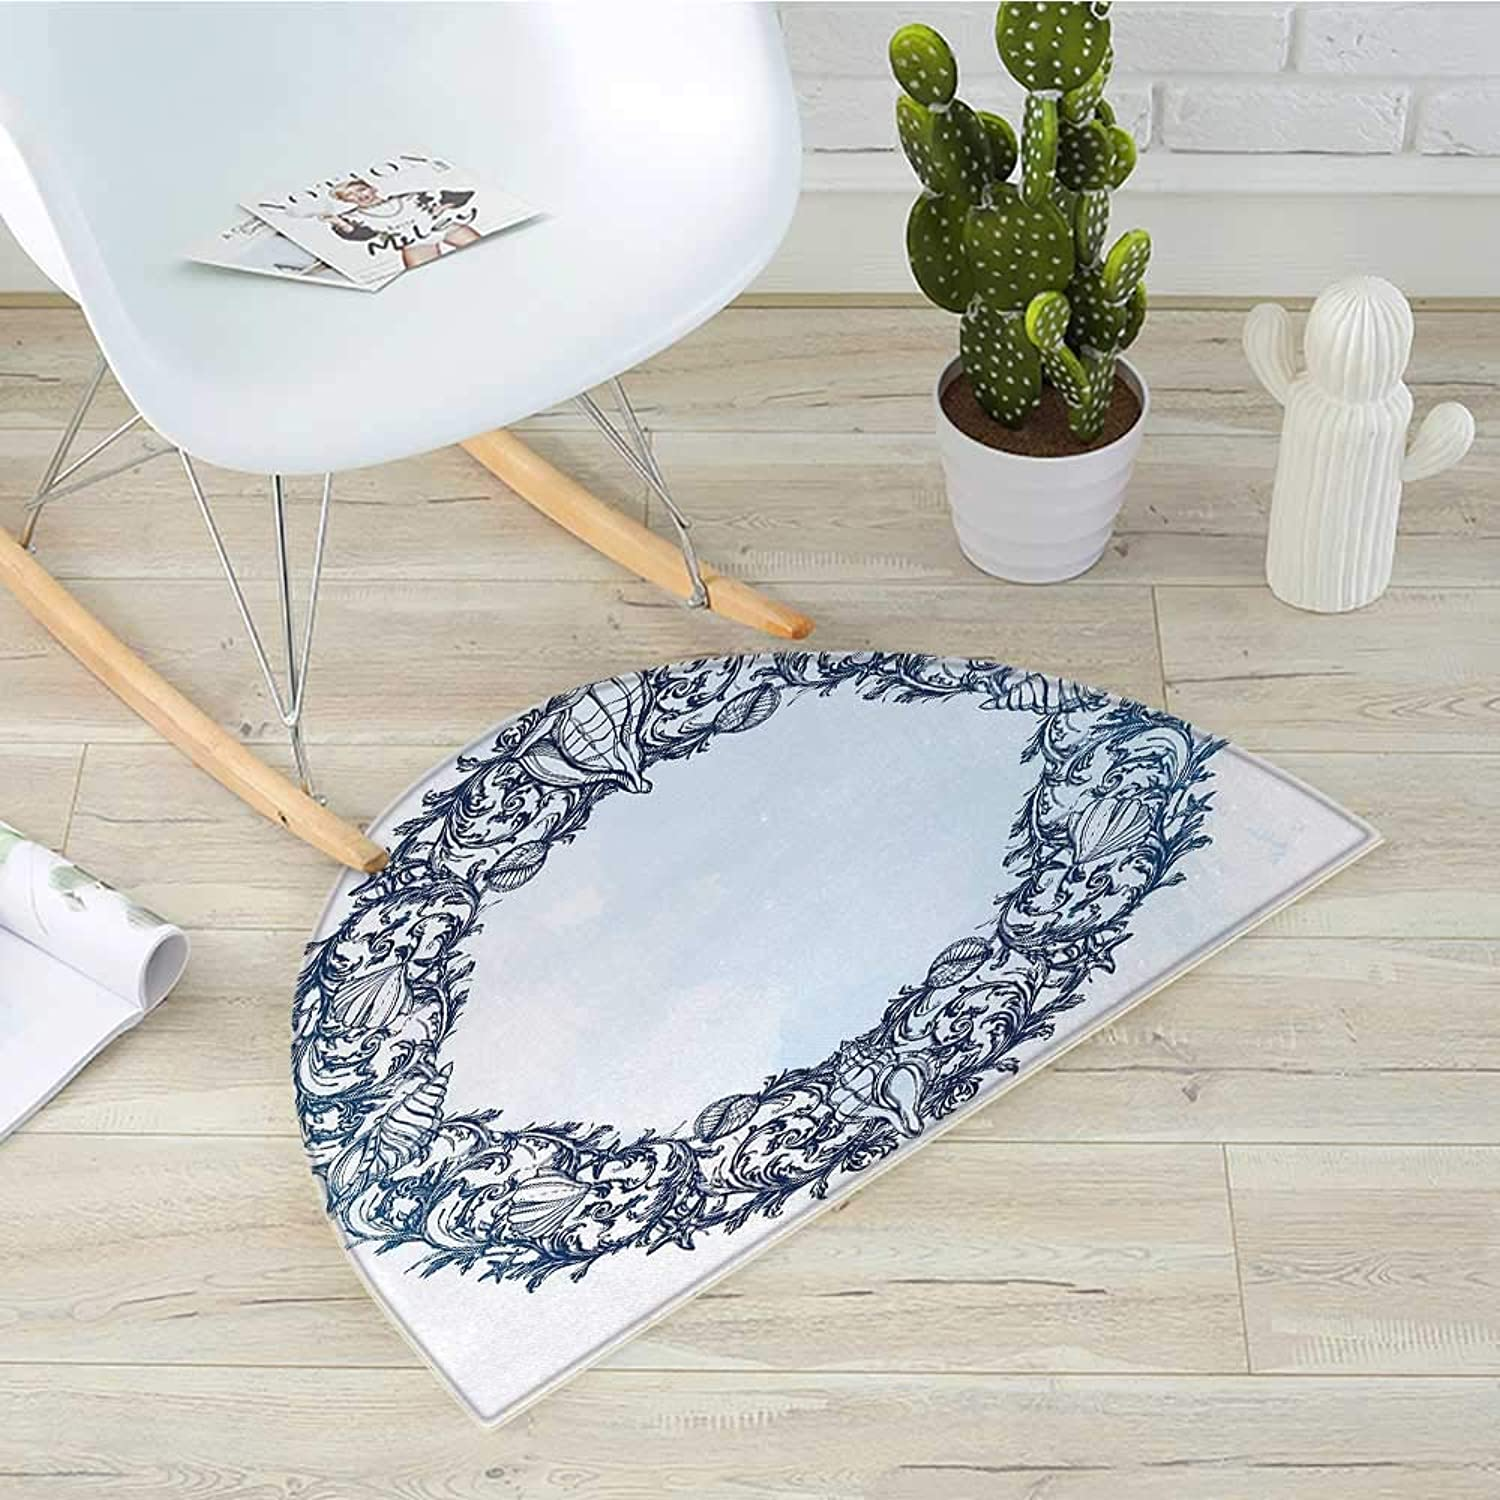 Occult Semicircular CushionCircular Ornamental Occult with Ethnic Floral Details Spirit of Universe Zen Nature Image Entry Door Mat H 31.5  xD 47.2  bluee